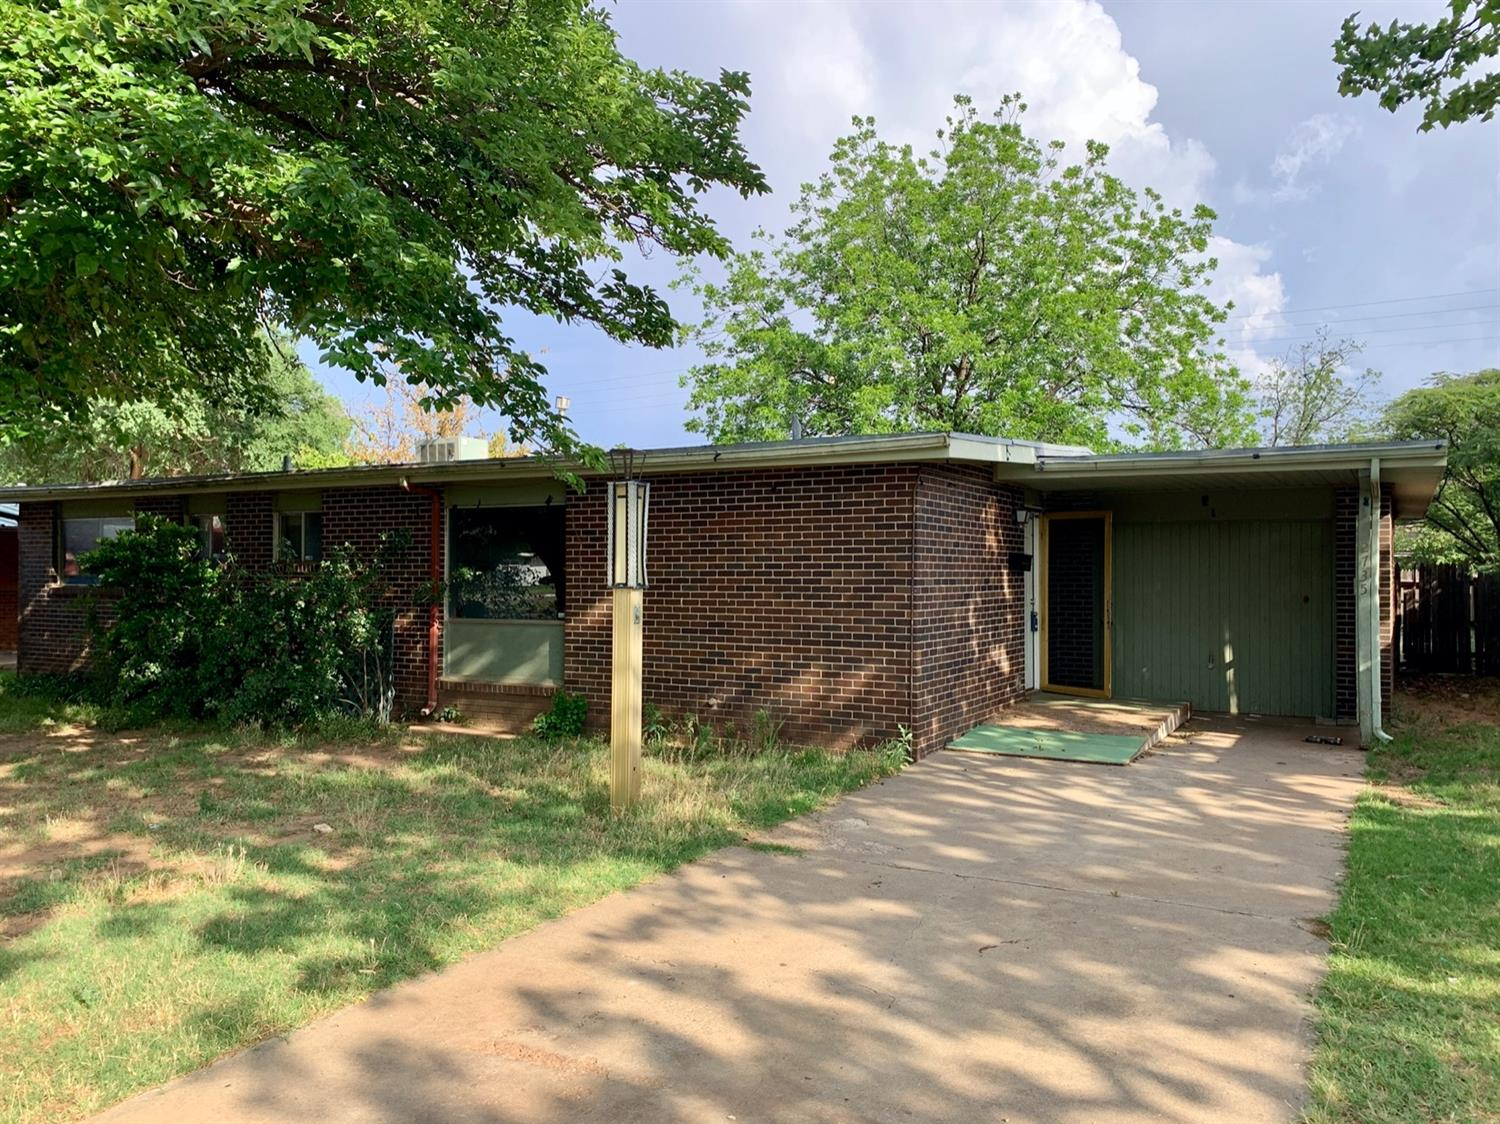 2735 68th Street, Lubbock in Lubbock County, TX 79413 Home for Sale